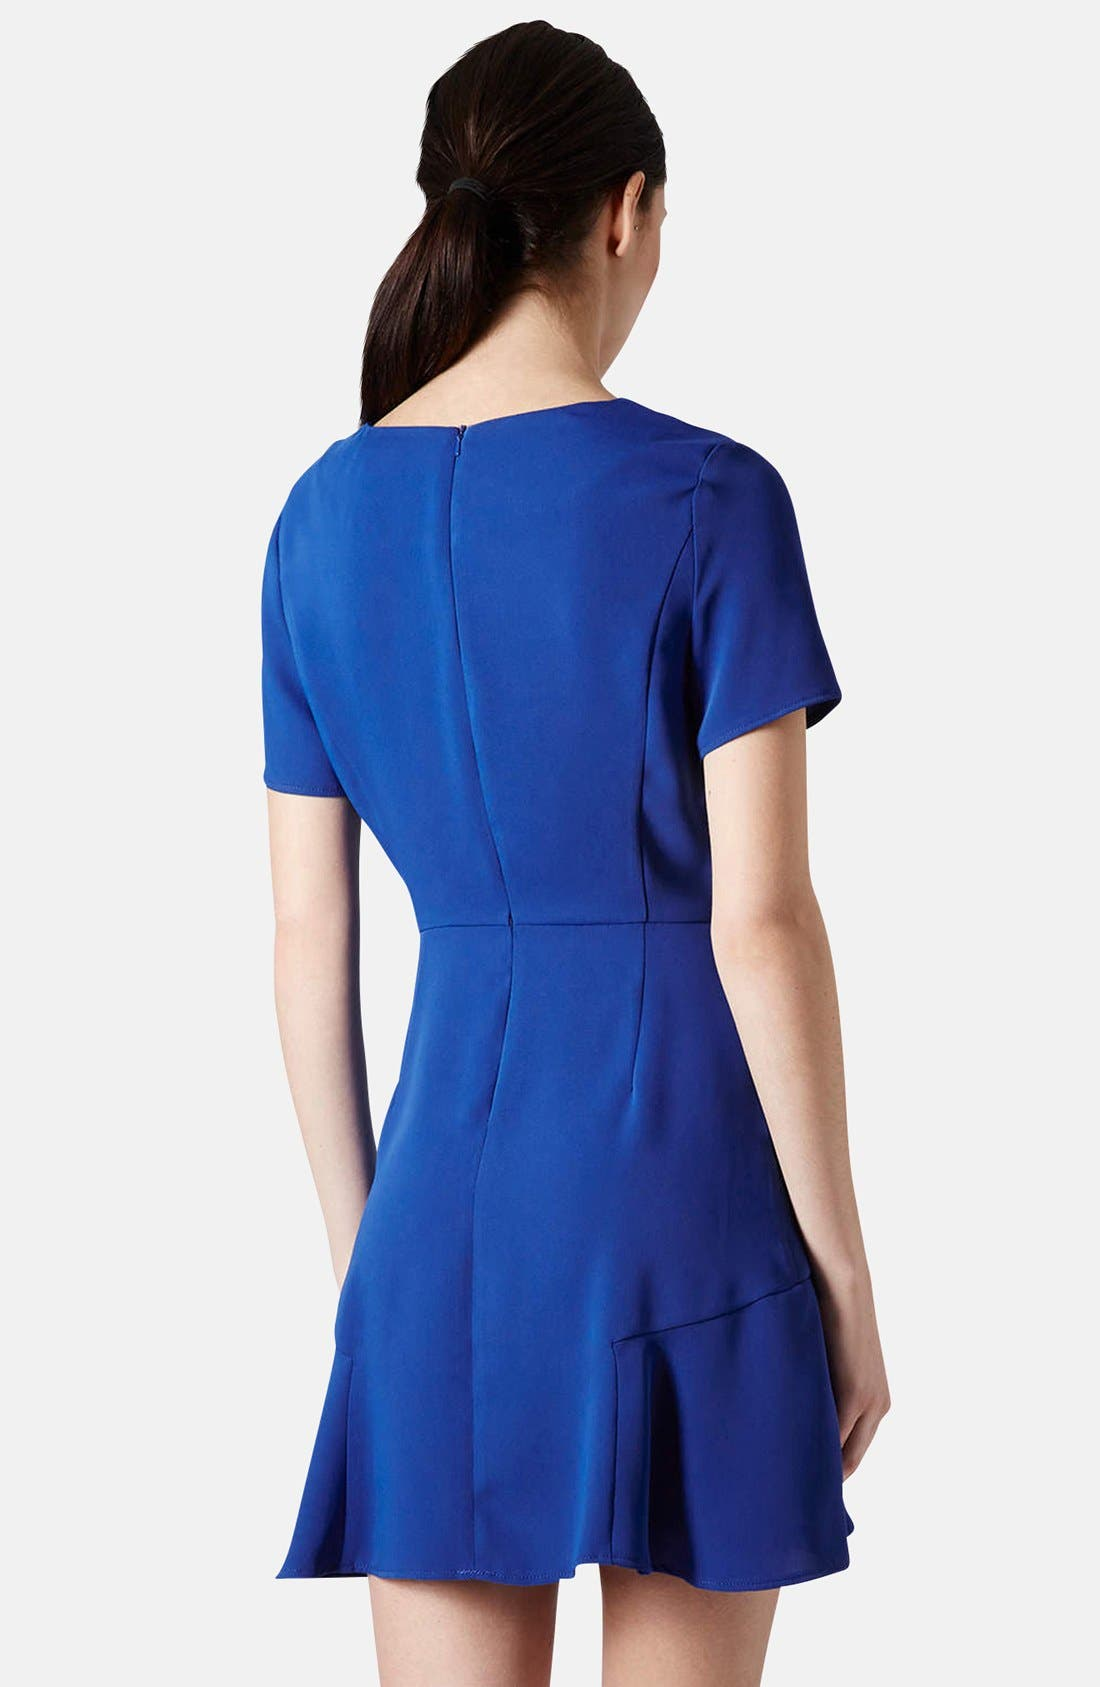 TOPSHOP, Crepe Fit & Flare Dress, Alternate thumbnail 4, color, 430